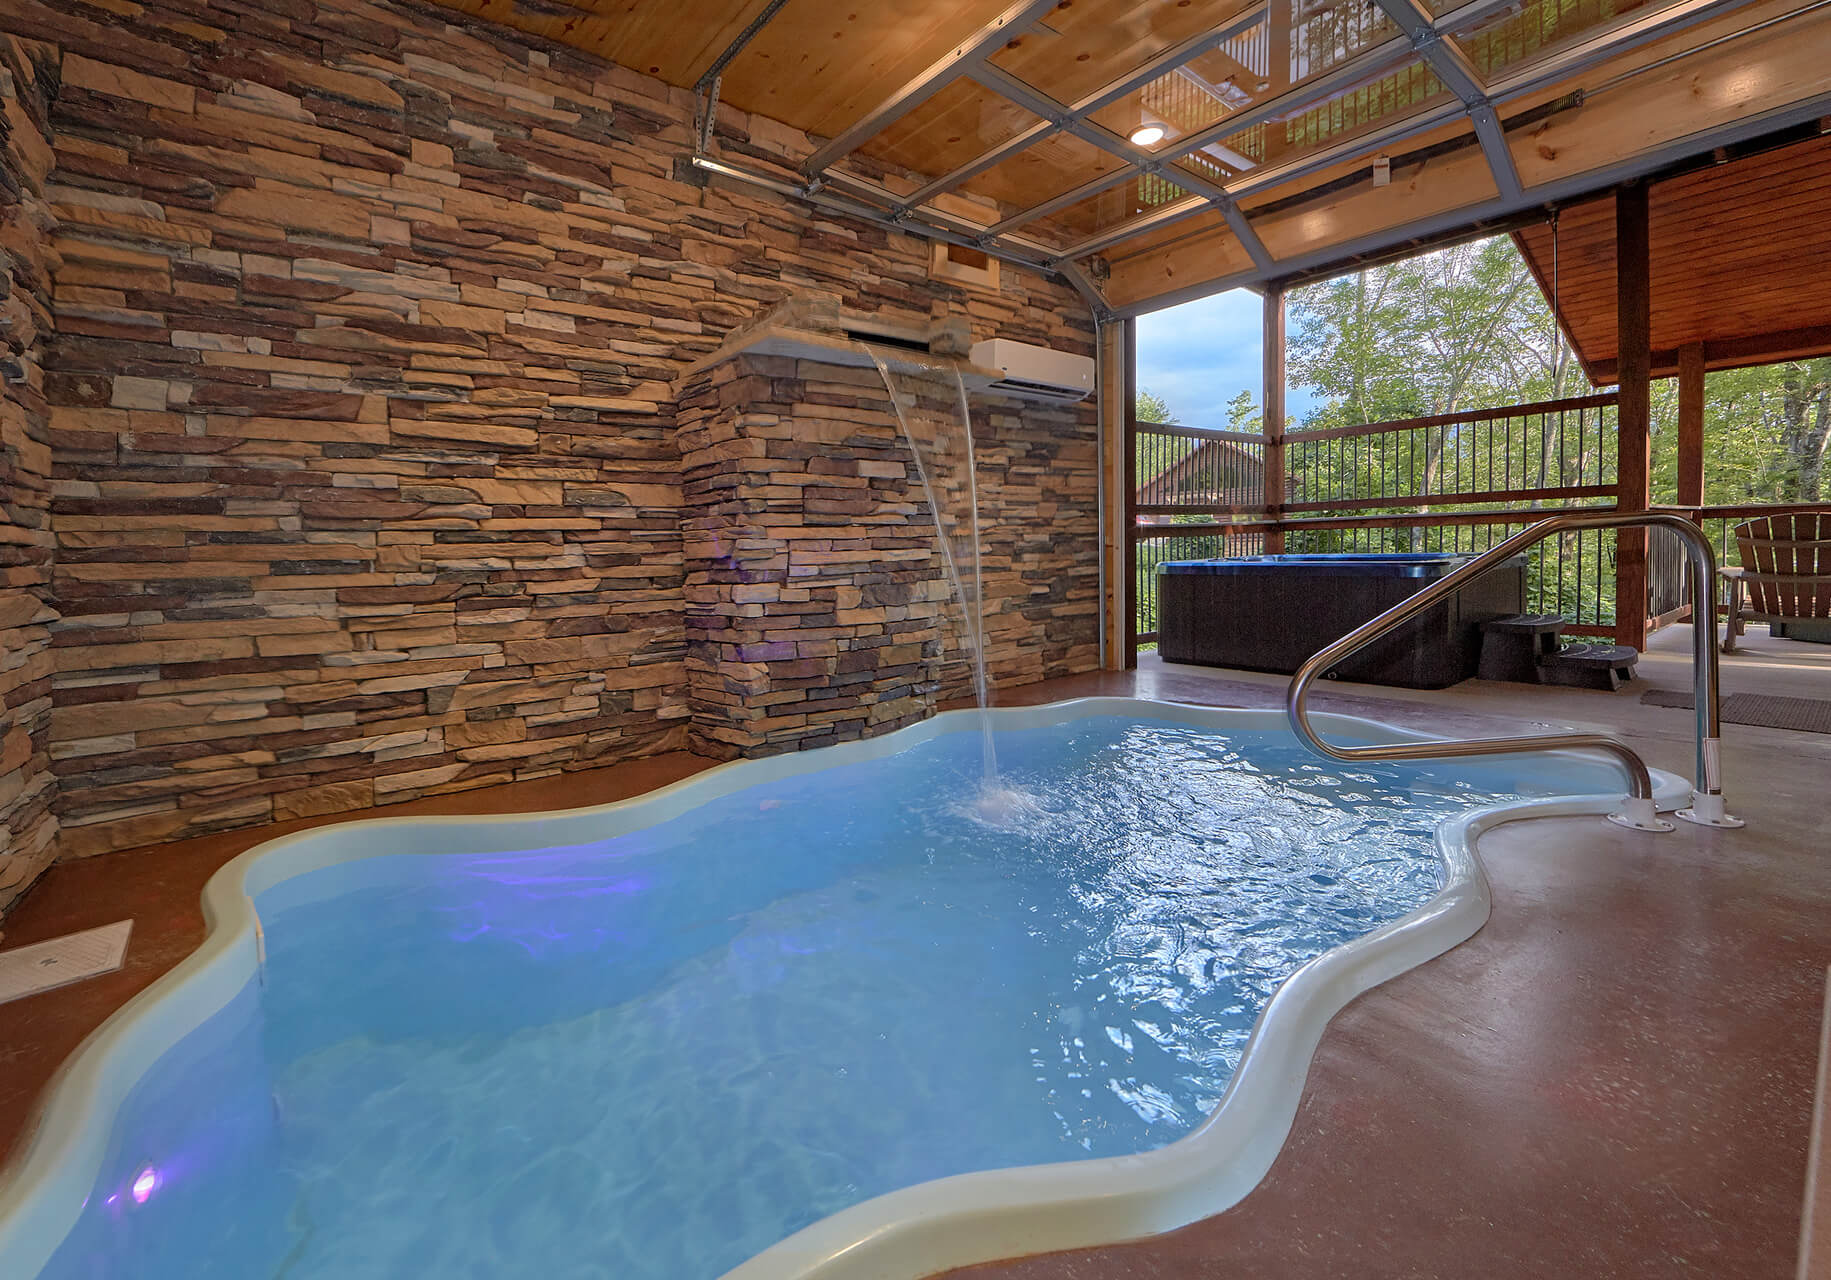 pool with located lodge inspirational in majestic bedroom view cabins collection and of cabin theater gatlinburg awesome indoor room